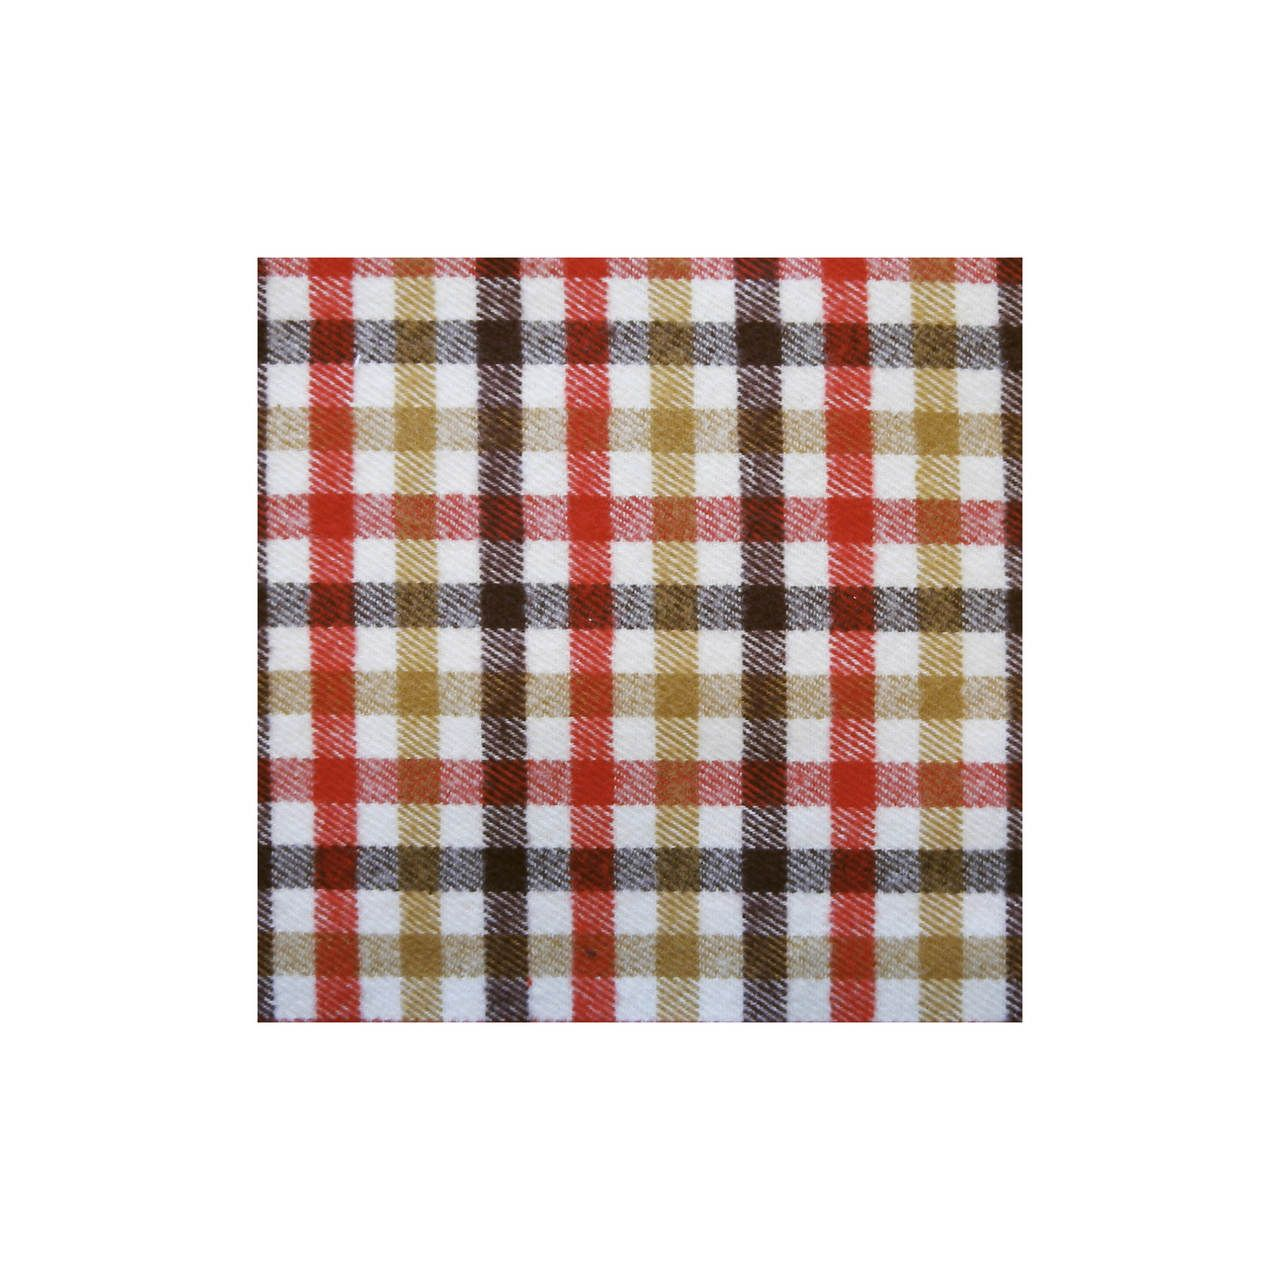 made by measure - Flannel Red Tone Gingham , $89.00 (http://www.madebymeasure.com/flannel-red-tone-gingham/)